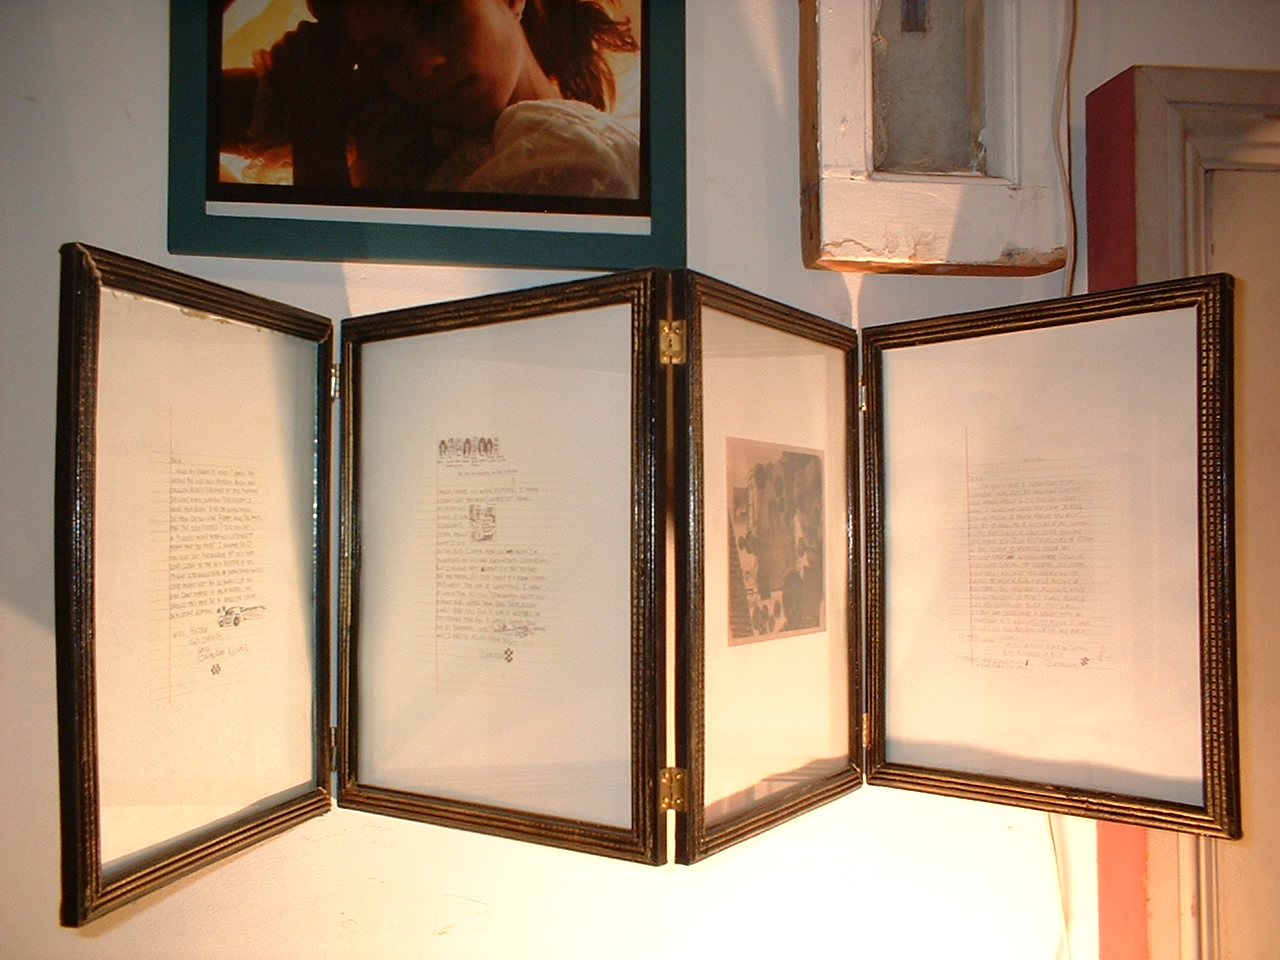 Documents/Eternal Youth/ Momento Mori. 1983, 1999, 2001. Letters from B.C. (now deceased) photo collage by W. L. (now deceased), artifact from performance